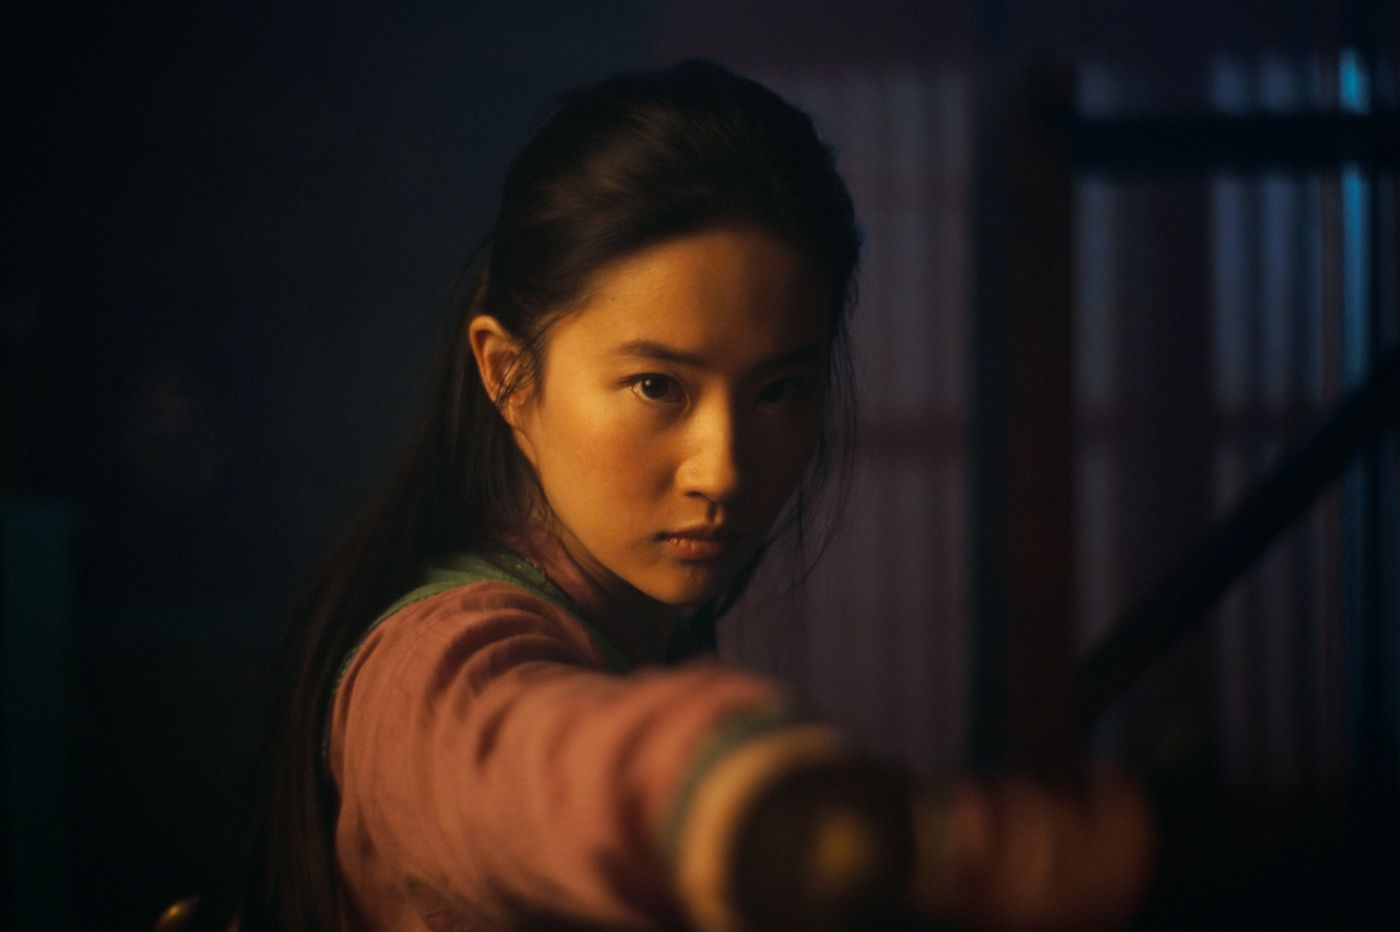 'Mulan' at home for $30: Is this any way to open a blockbuster?